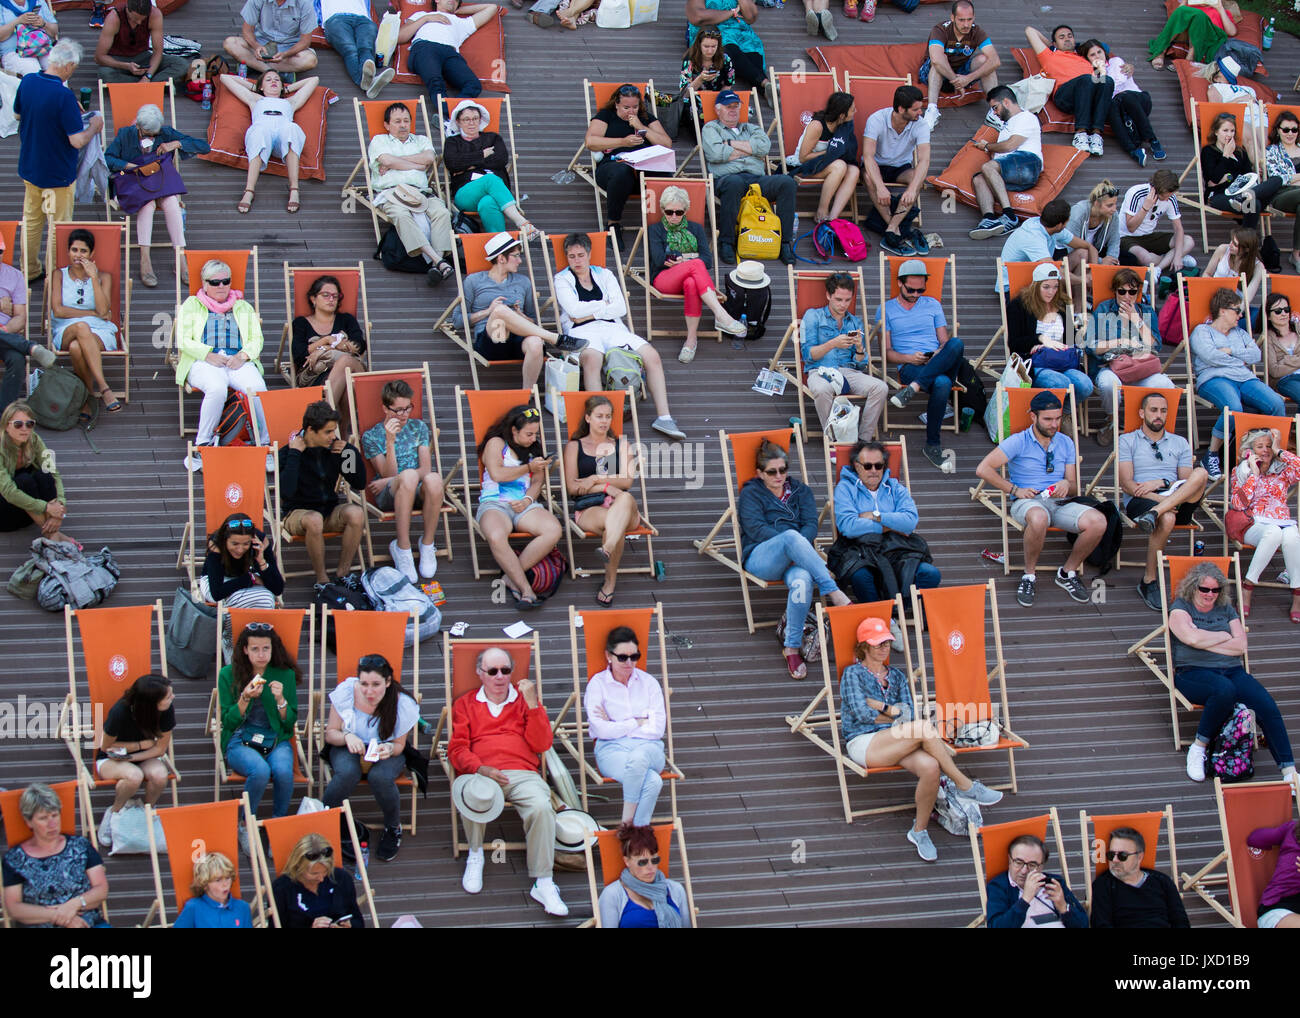 French Open 2017 Feature,Spectators sitting in deck chairs. Stock Photo